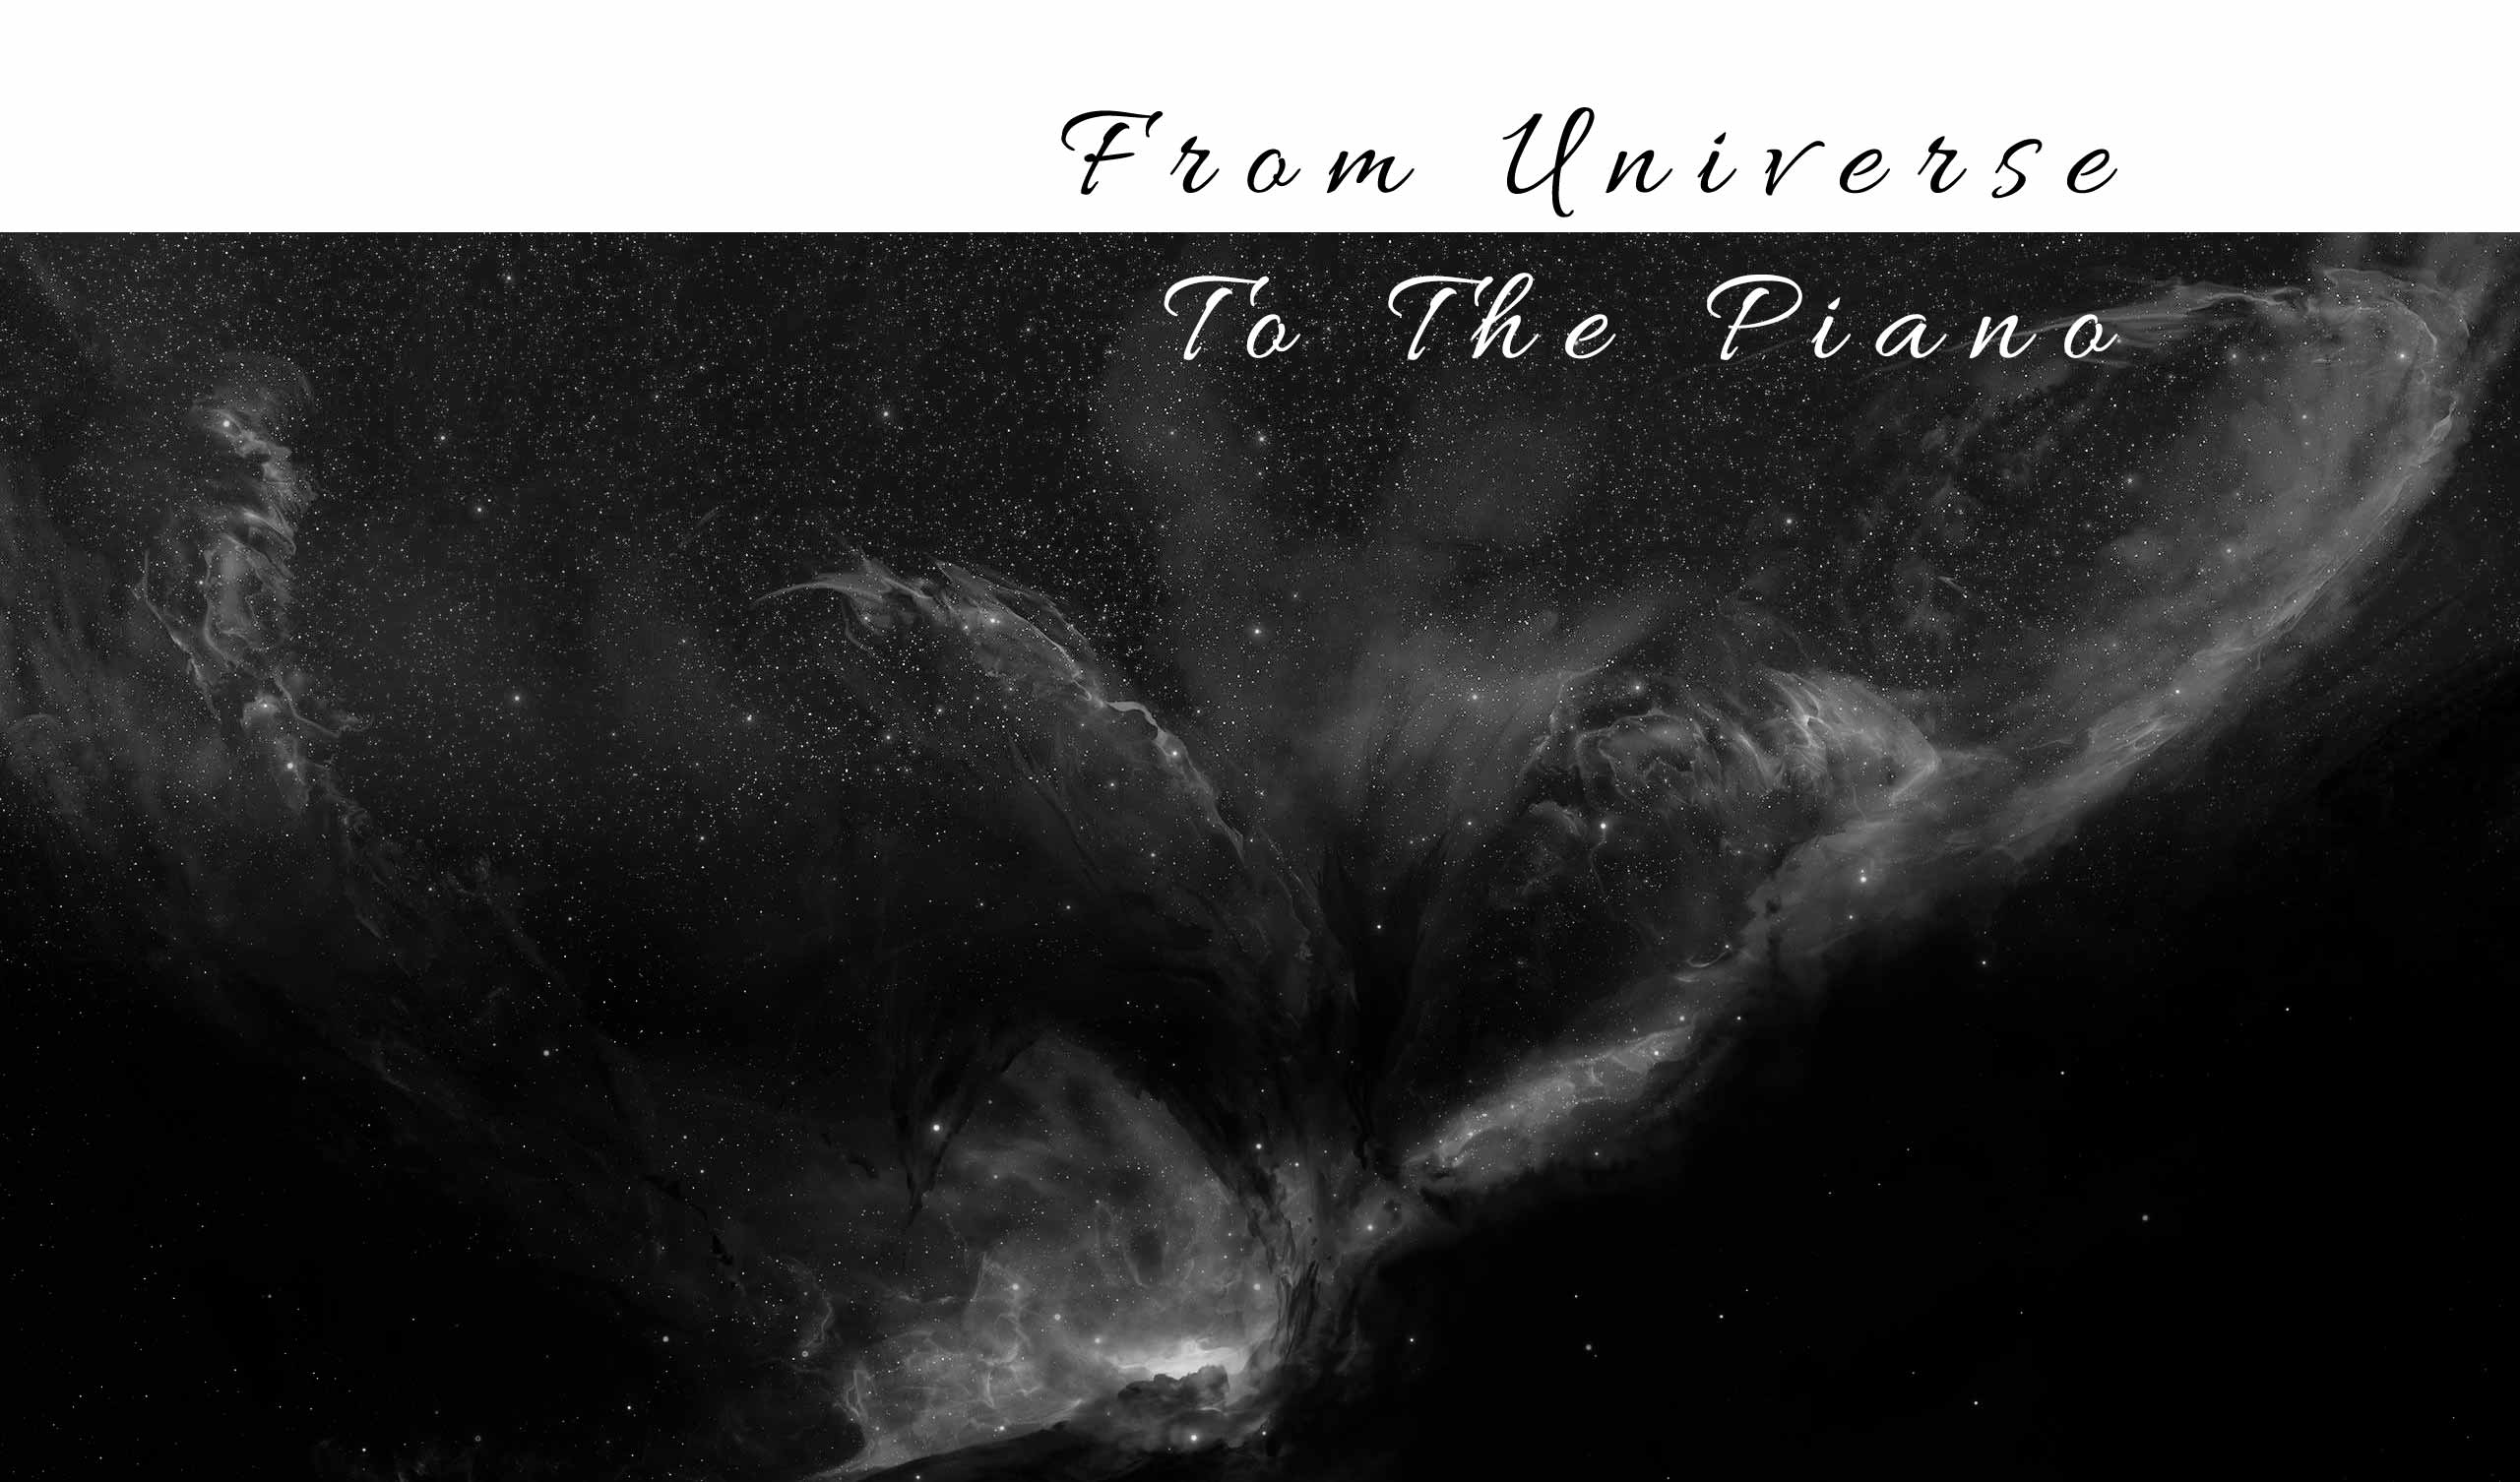 Dream'Ed - From Universe To The Piano